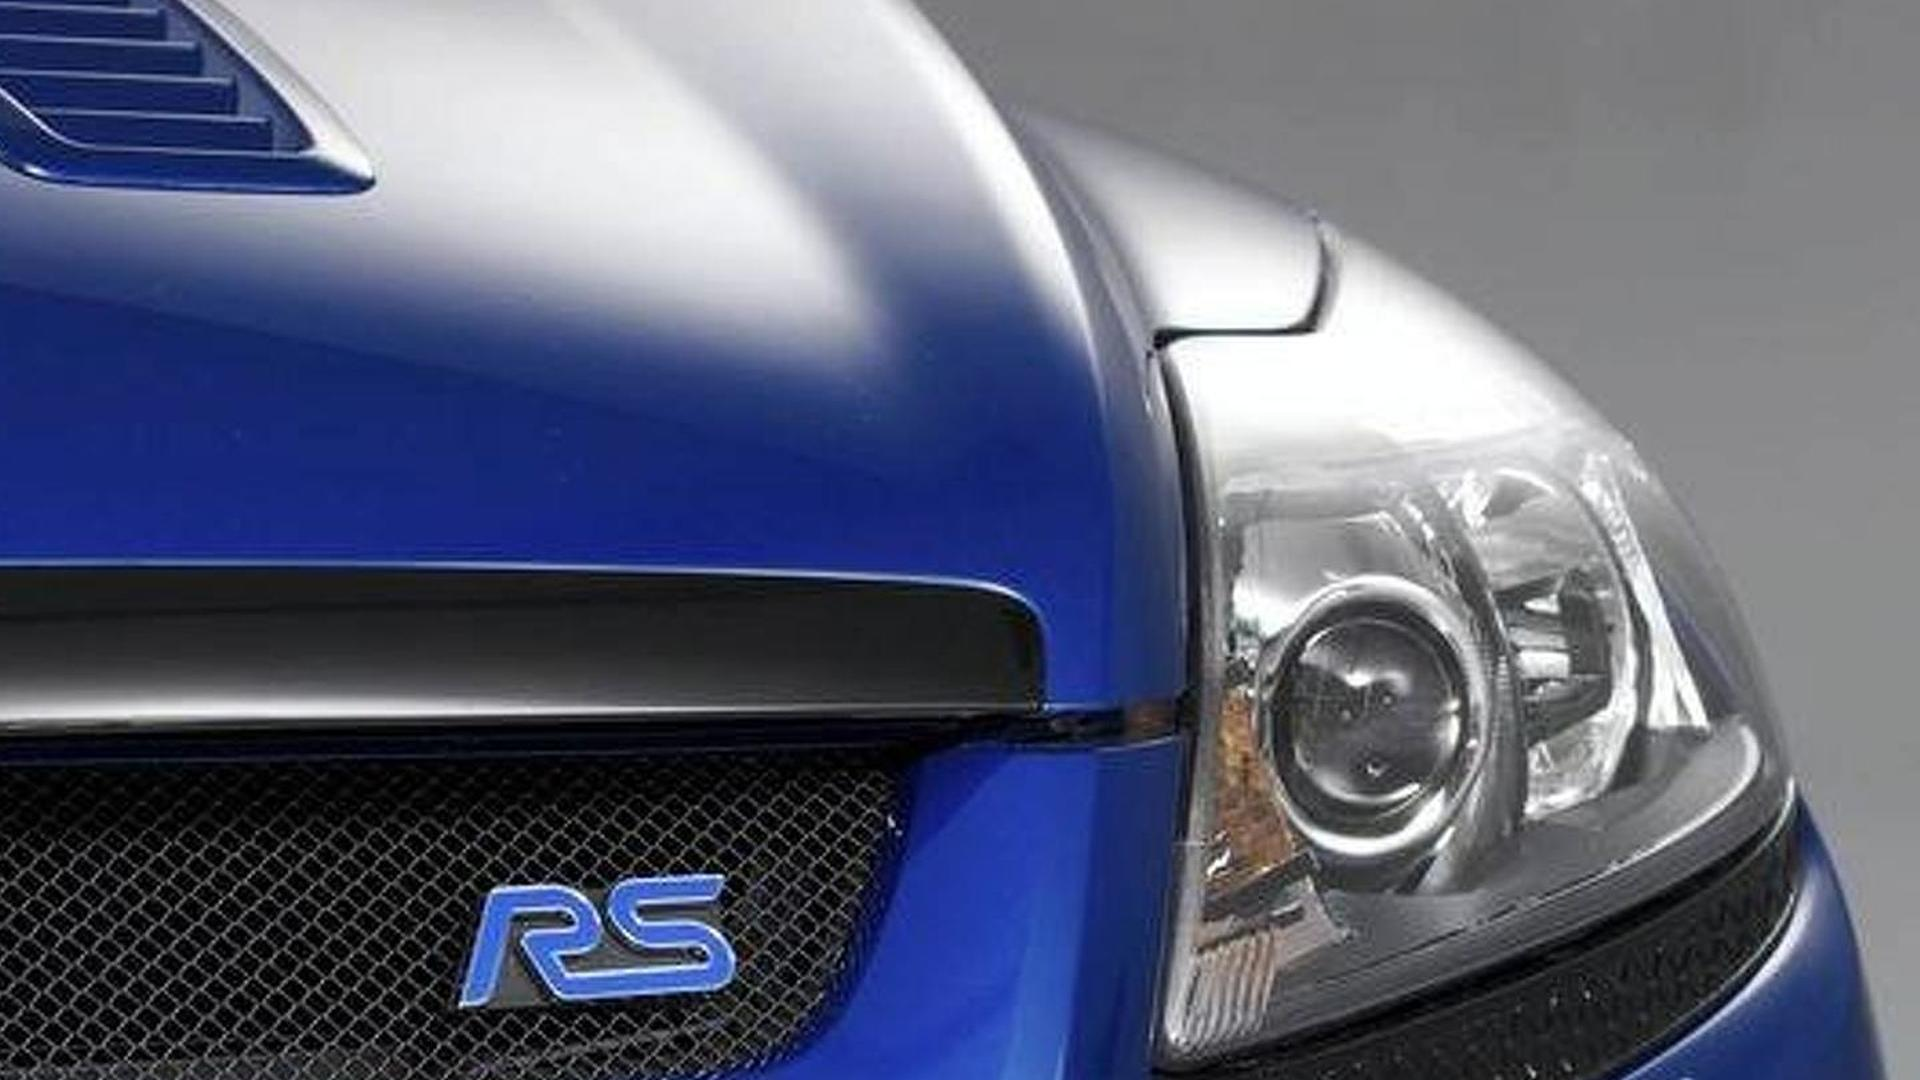 2015 Ford Focus RS details come into focus